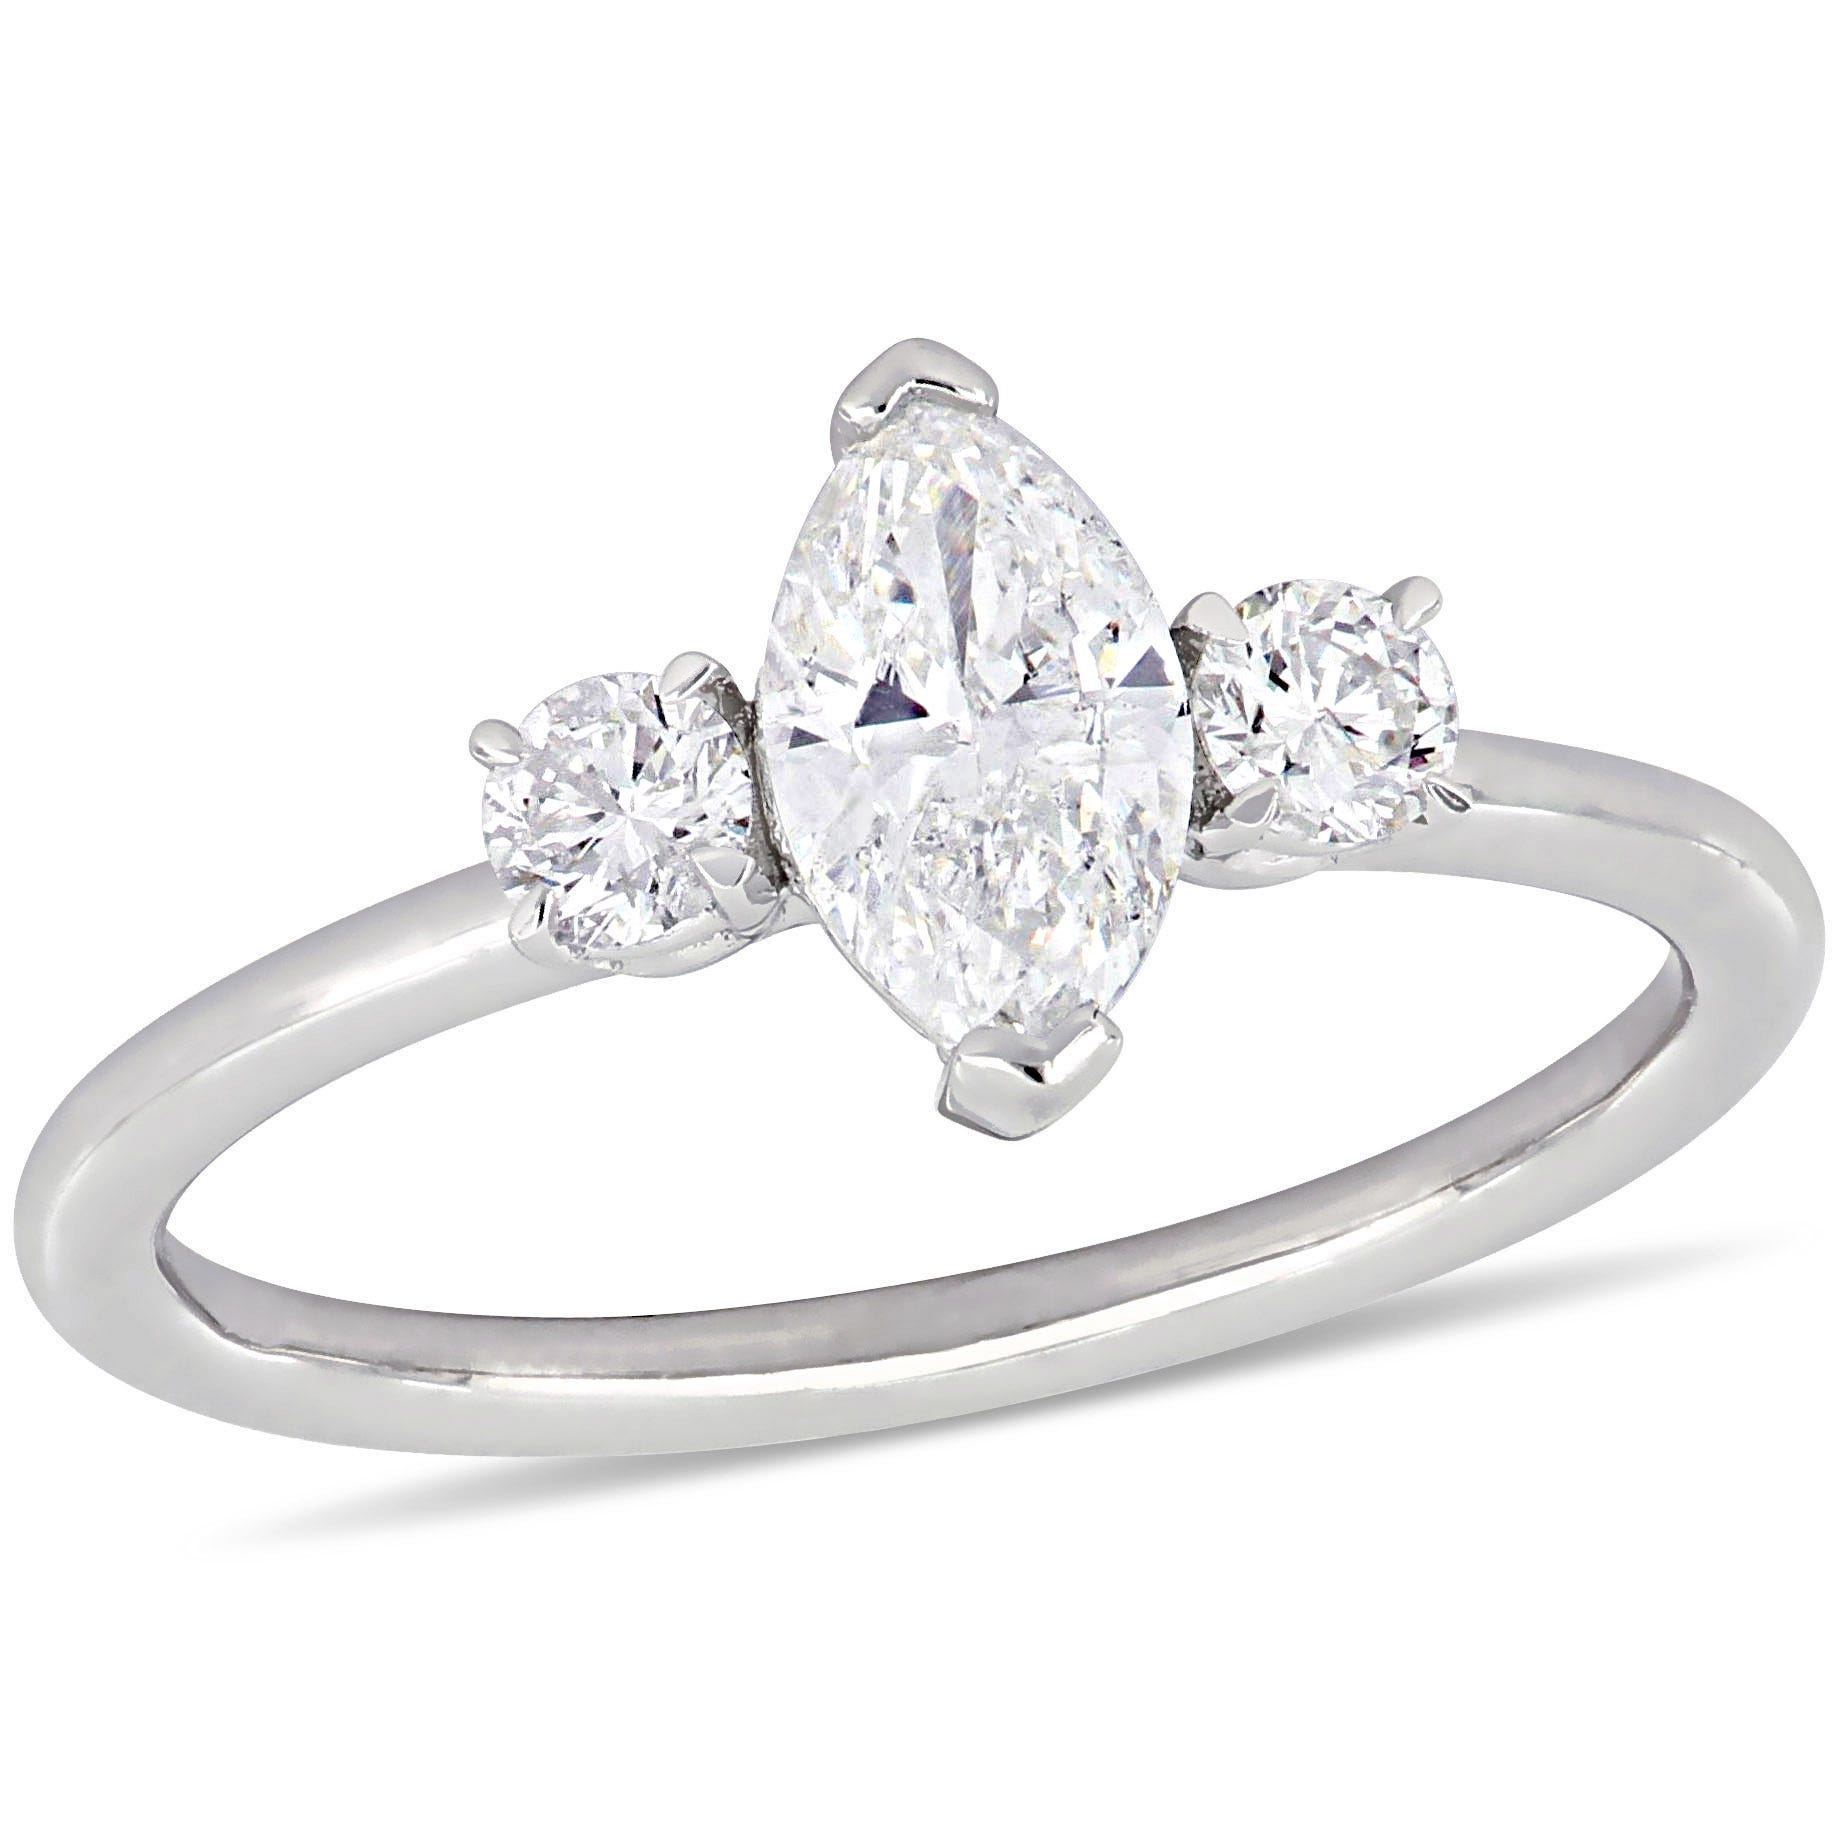 Three-Stone Marquise & Round 1ctw. Diamond Engagement Ring in 14k White Gold